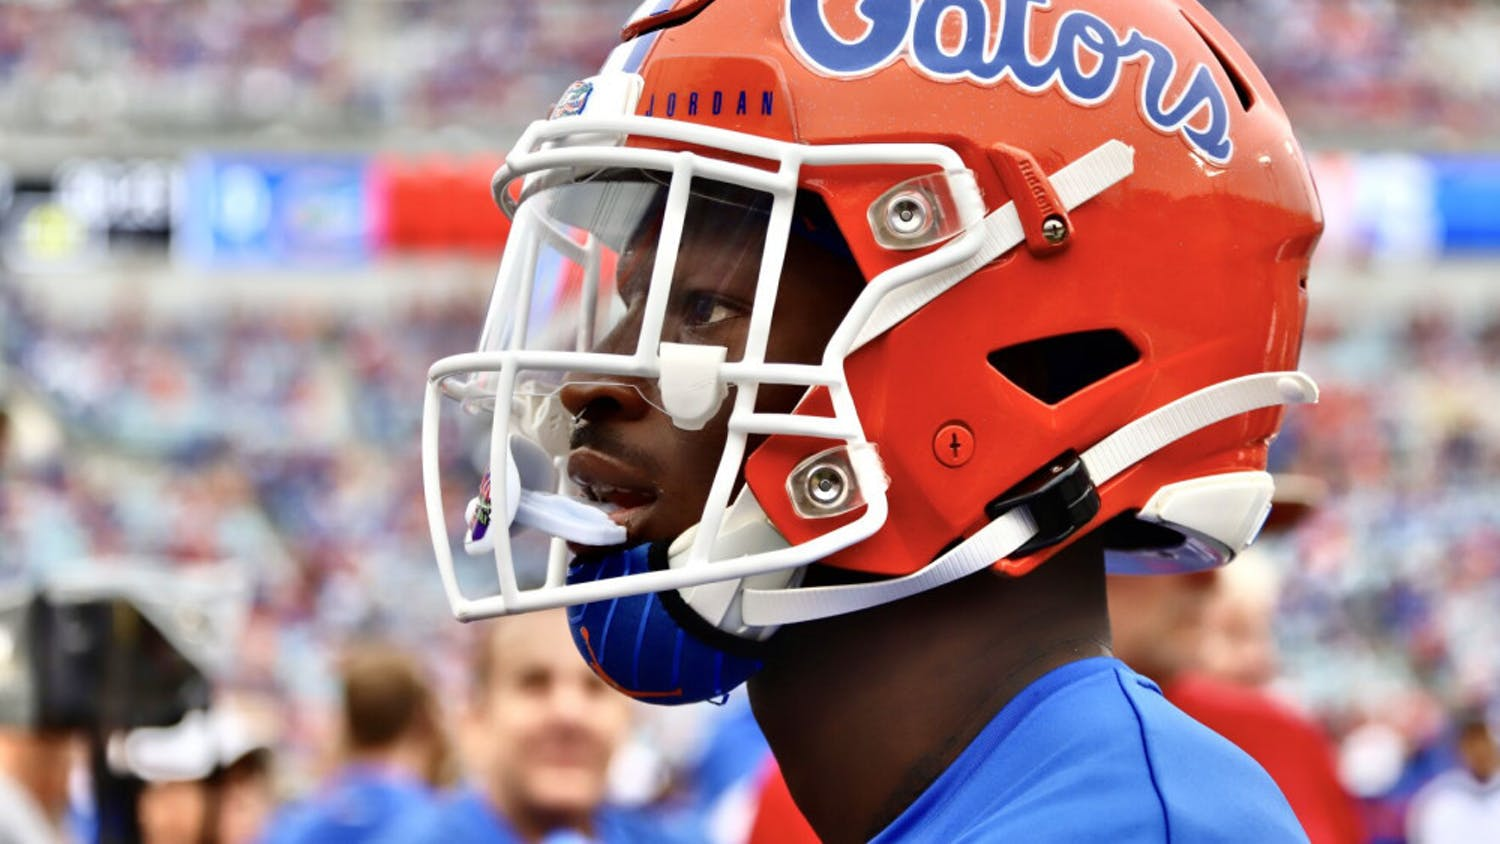 A close-up photo of a Florida player wearing his helmet